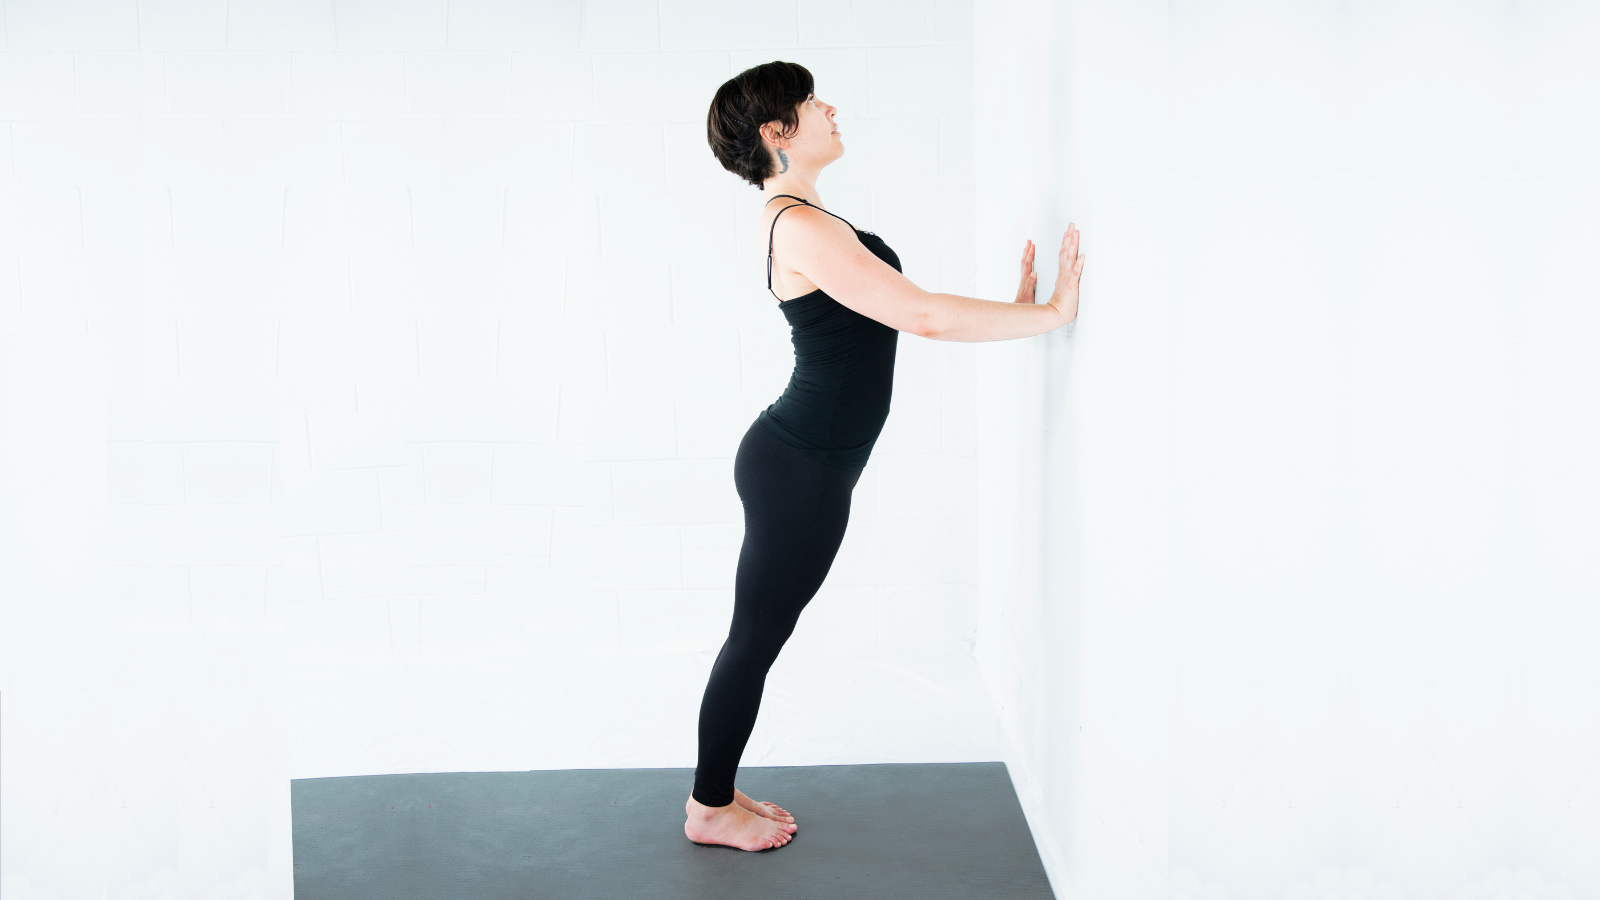 How to practice a modified version of Downward Facing Dog Pose (Adho Mukha Svanasana) at the wall